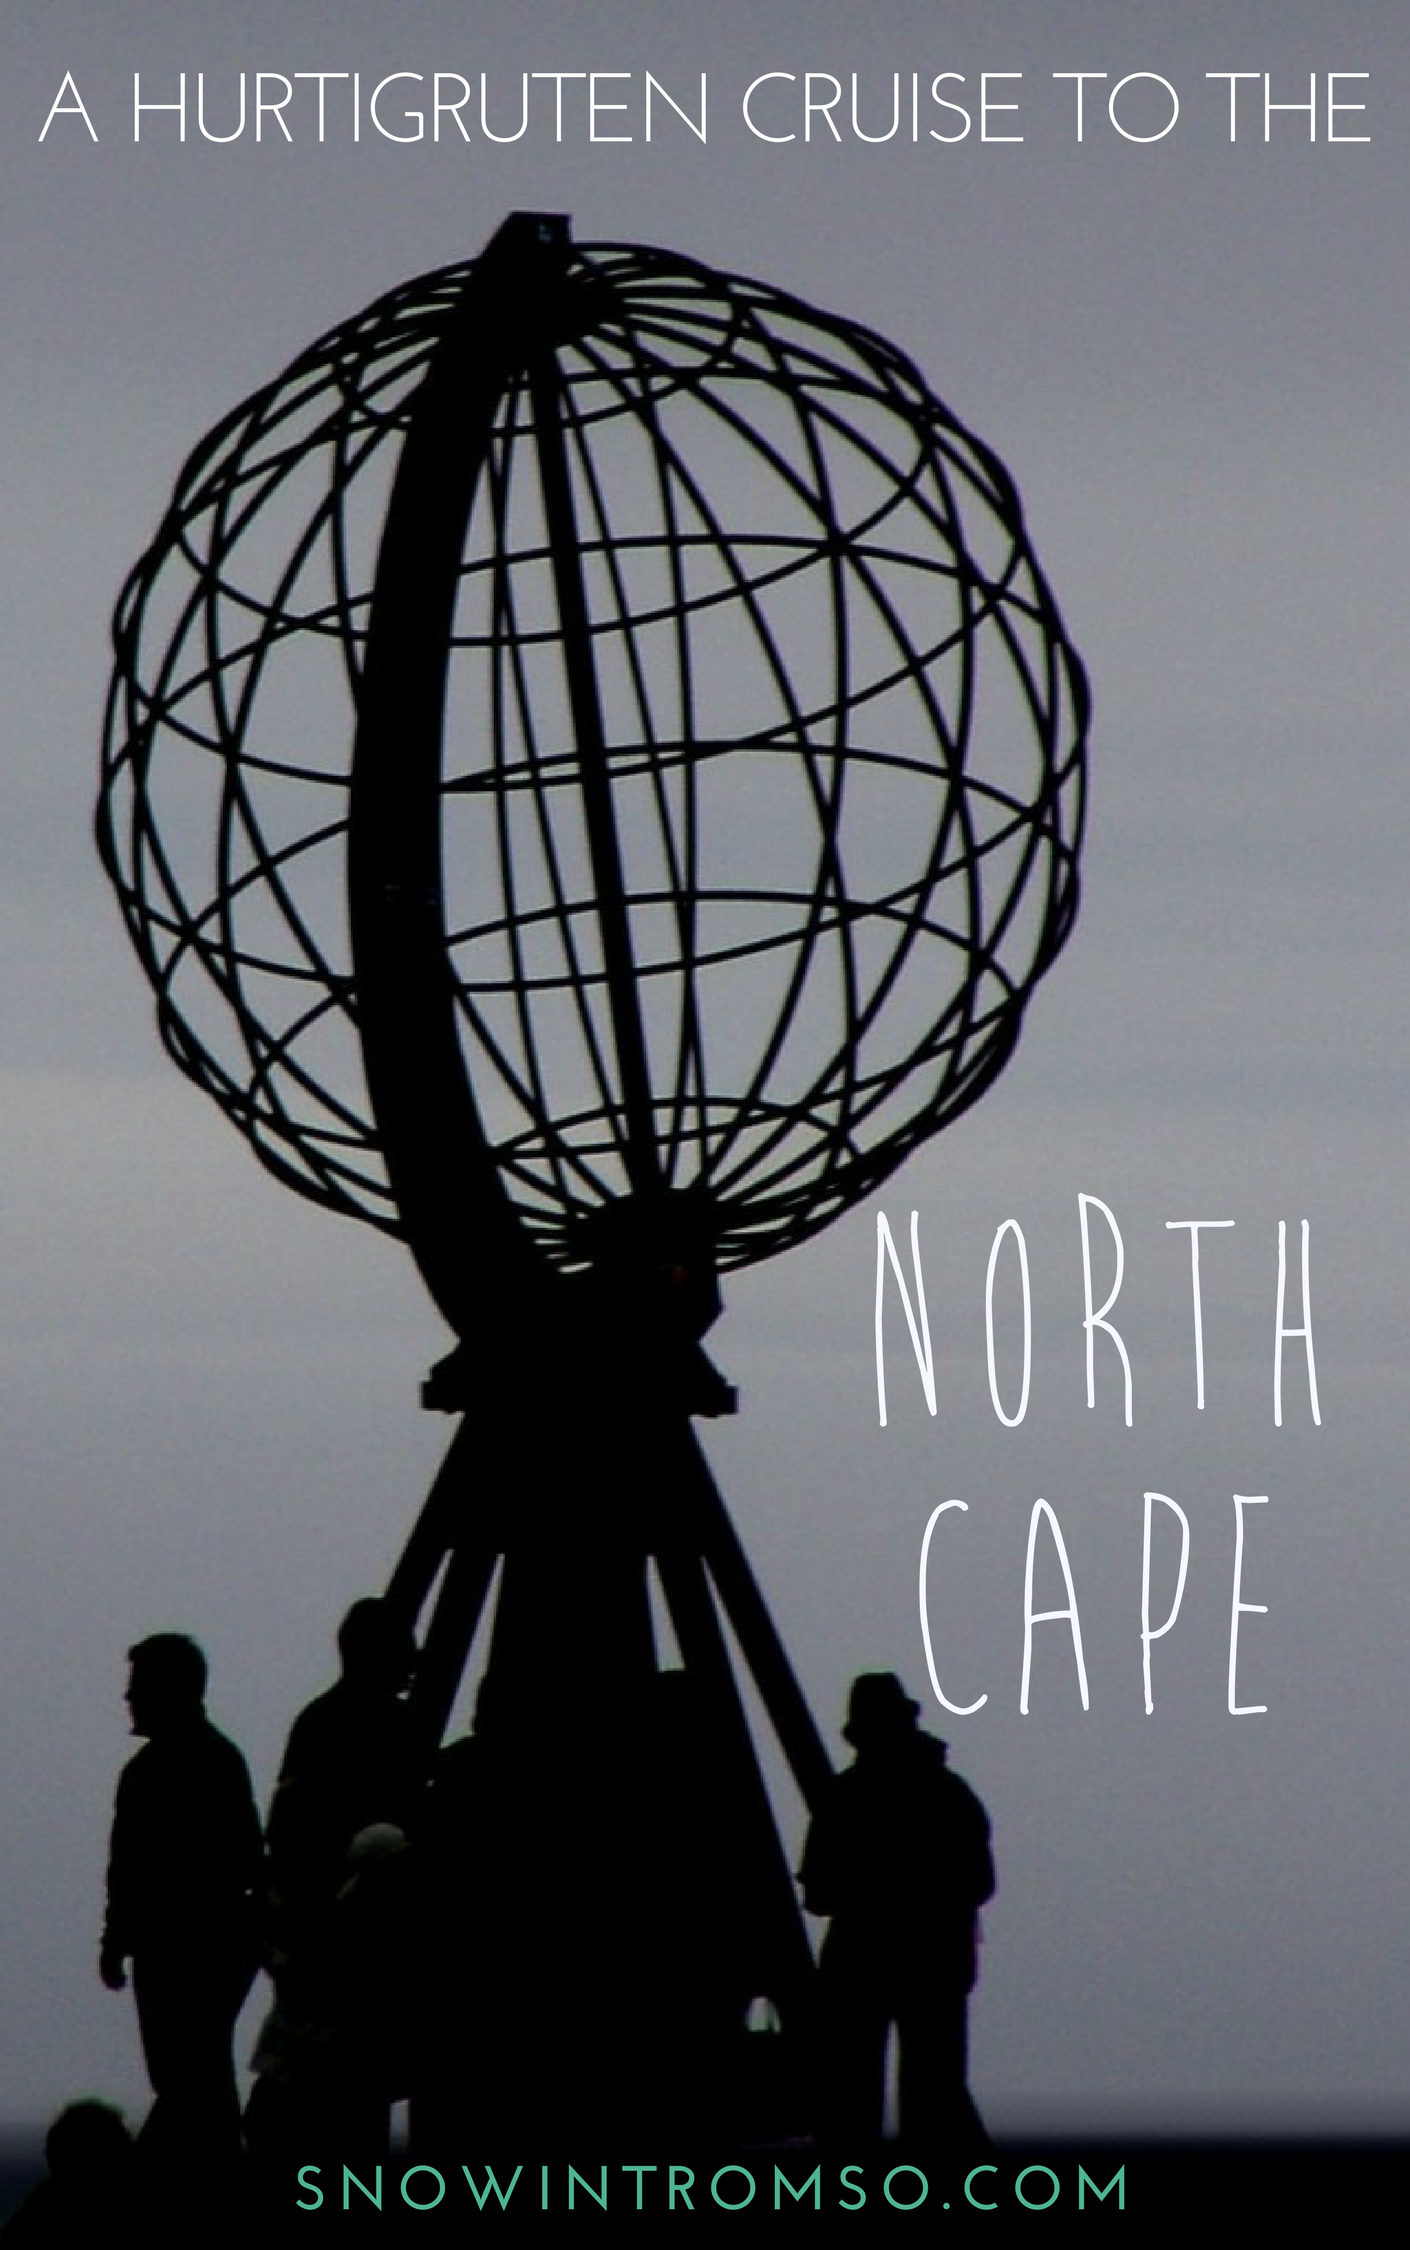 Interested in visiting the North Cape? Click through to read about my experience visiting the cape with Hurtigruten!